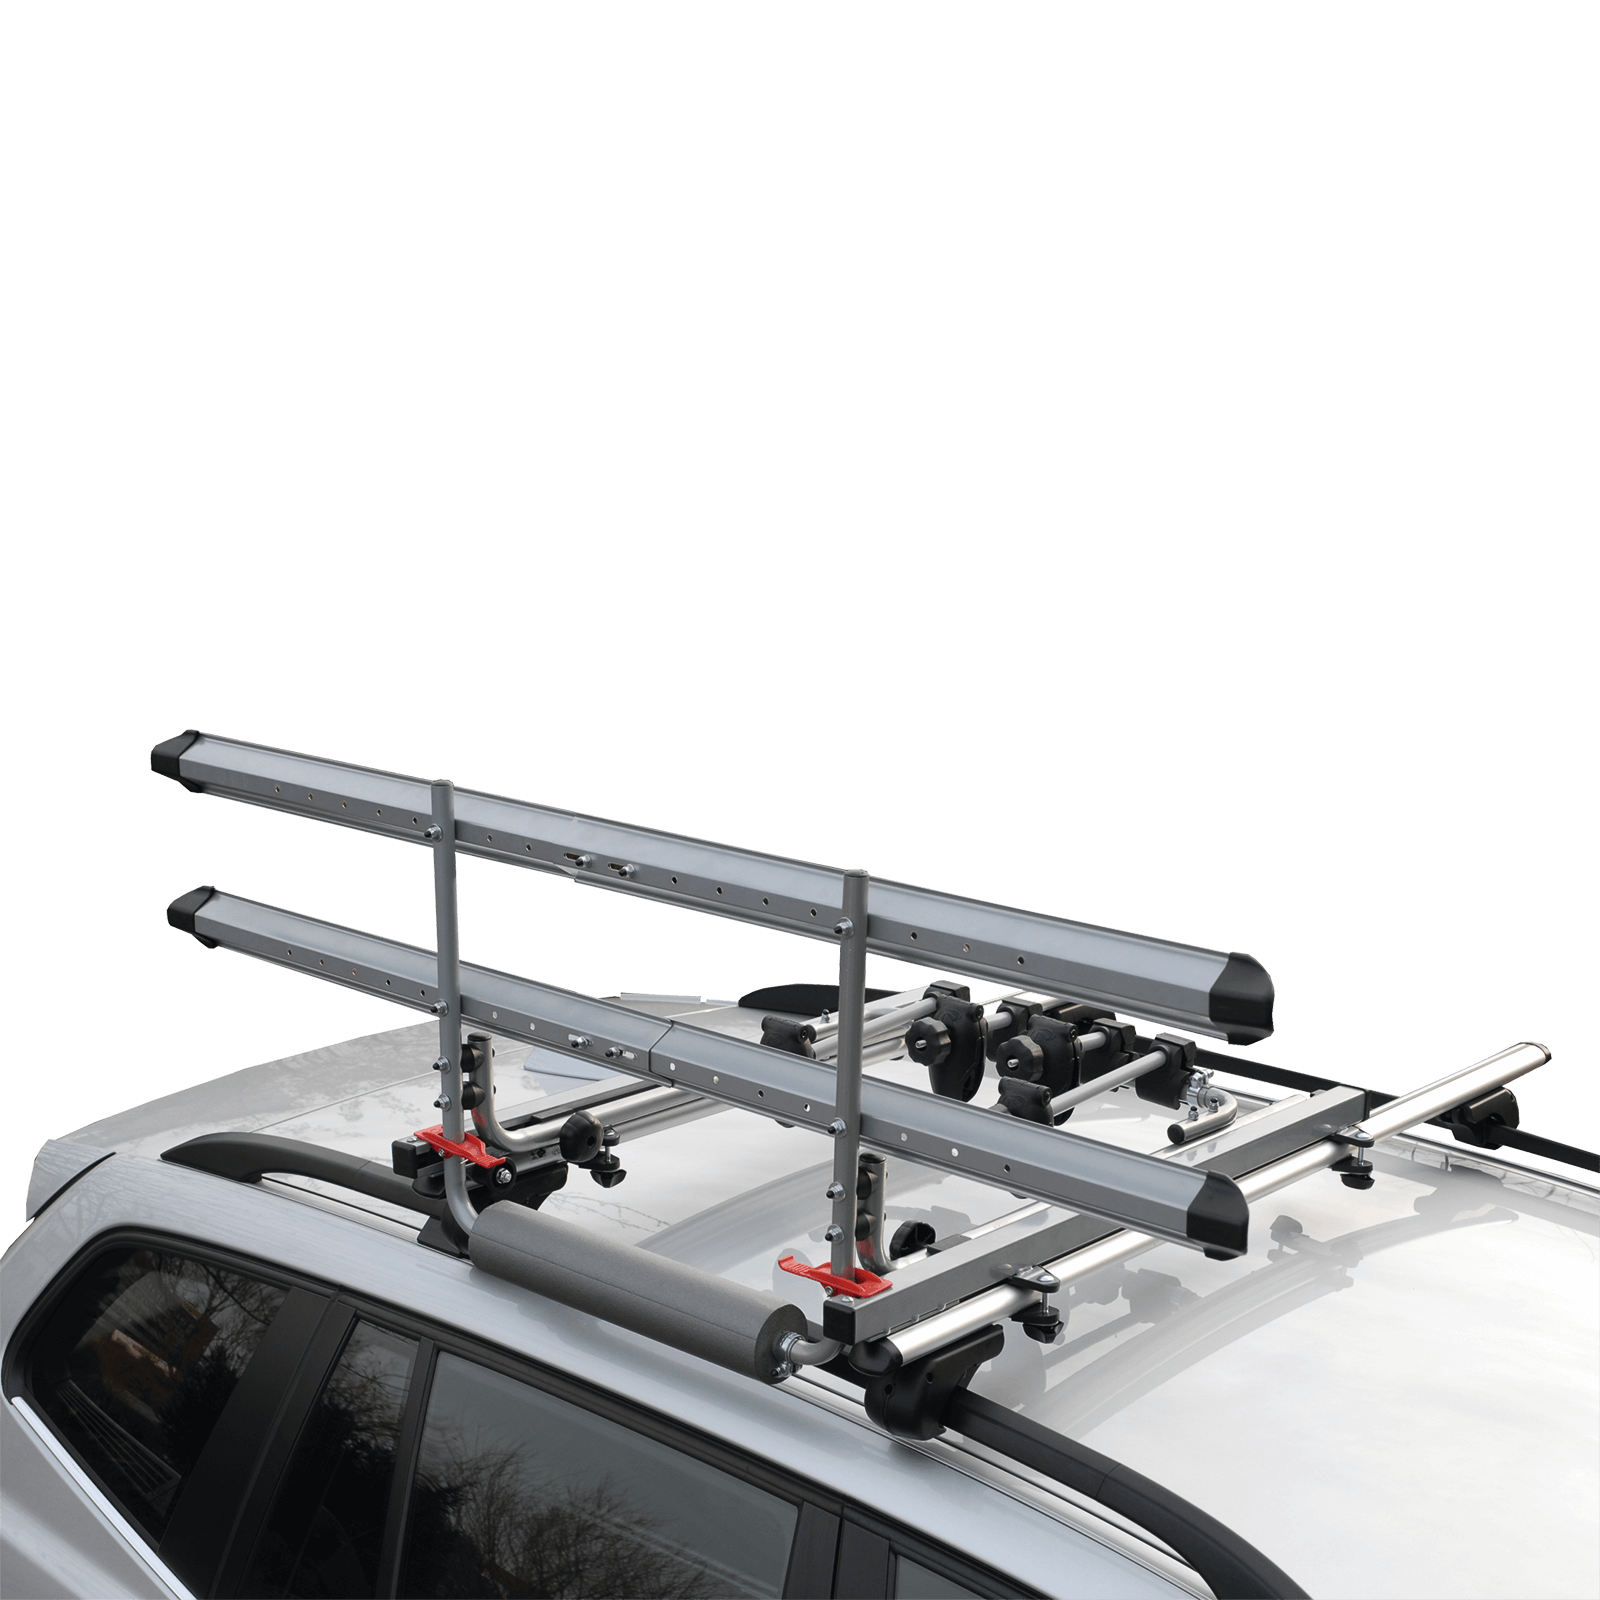 recreation mount pt large carrier canada ca p bike ct and car phat sports roof black vertical trunk living for bicycle rack